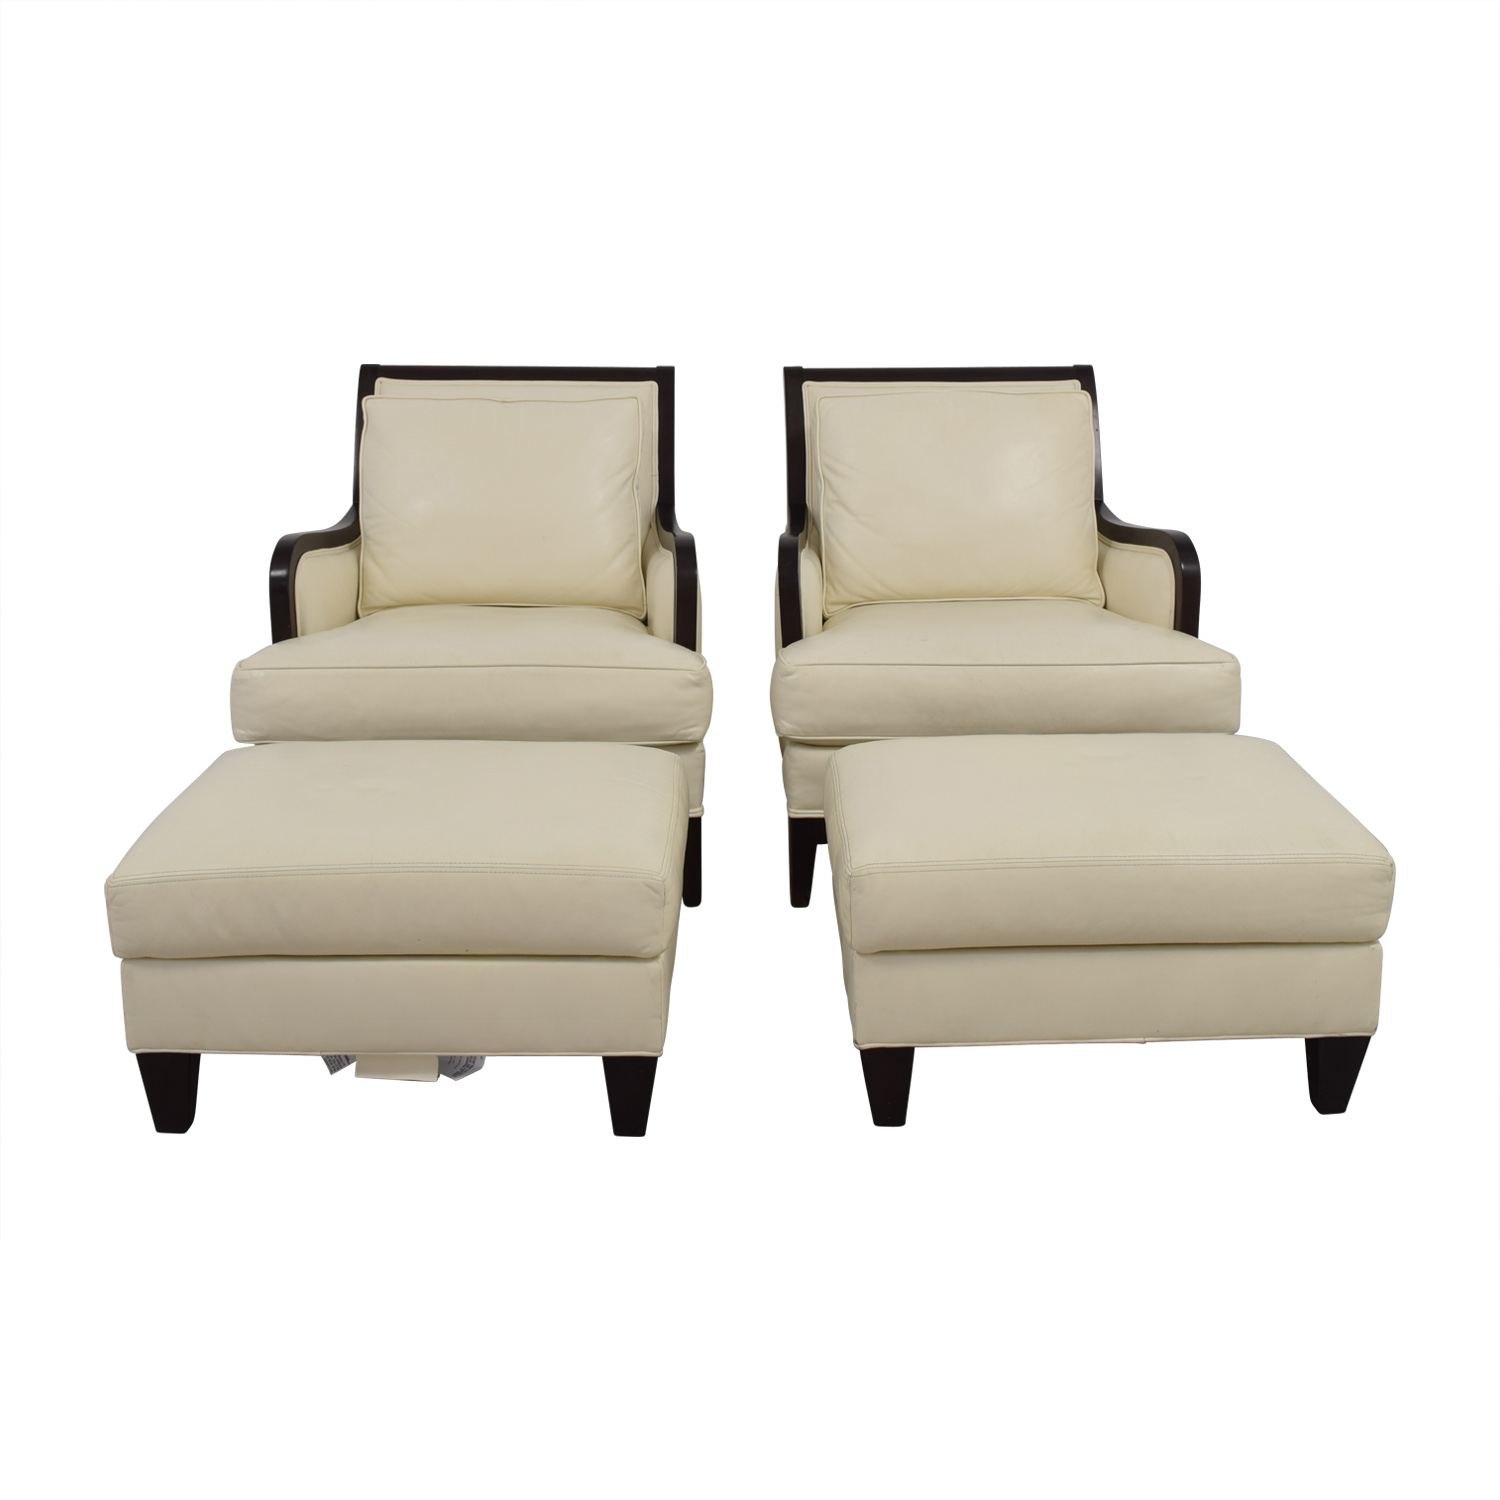 Ethan Allen Ethan Allen Palma Ivory Leather Chairs with Ottomans used